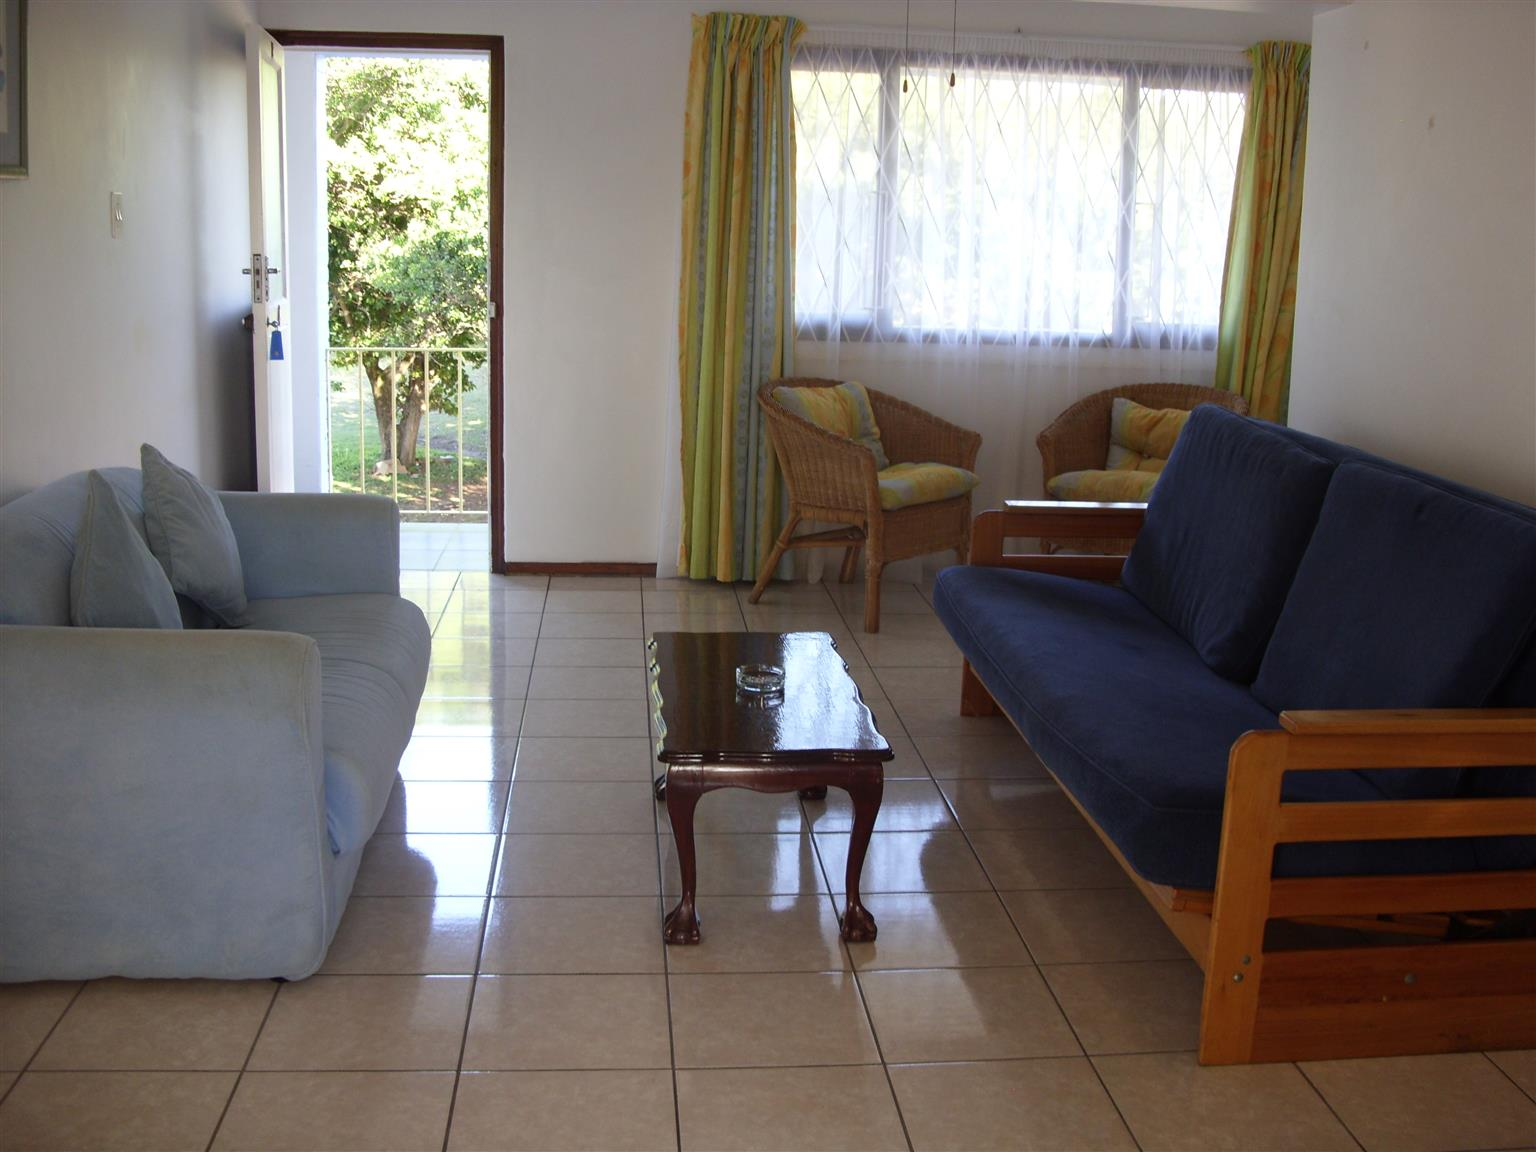 INVESTMENT THAT PAYS FOR ITSELF BLOCK OF FLATS FOR SALE ST MICHAELS-ON-SEA R2,550,000 FULLY TENANTED